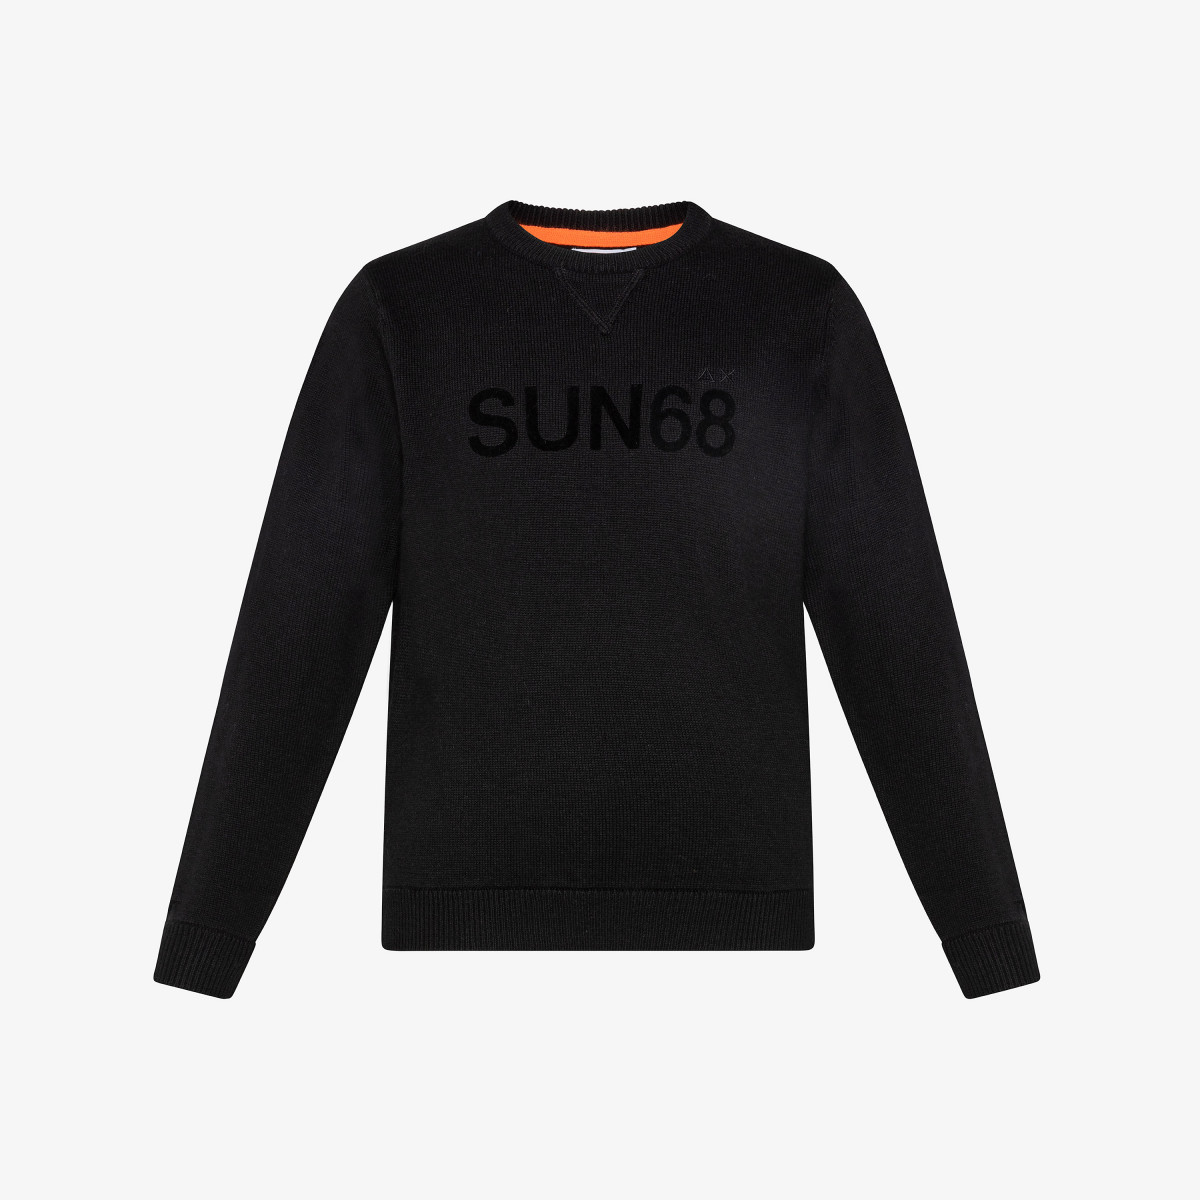 BOY'S ROUND LETTERING ON CHEST BLACK